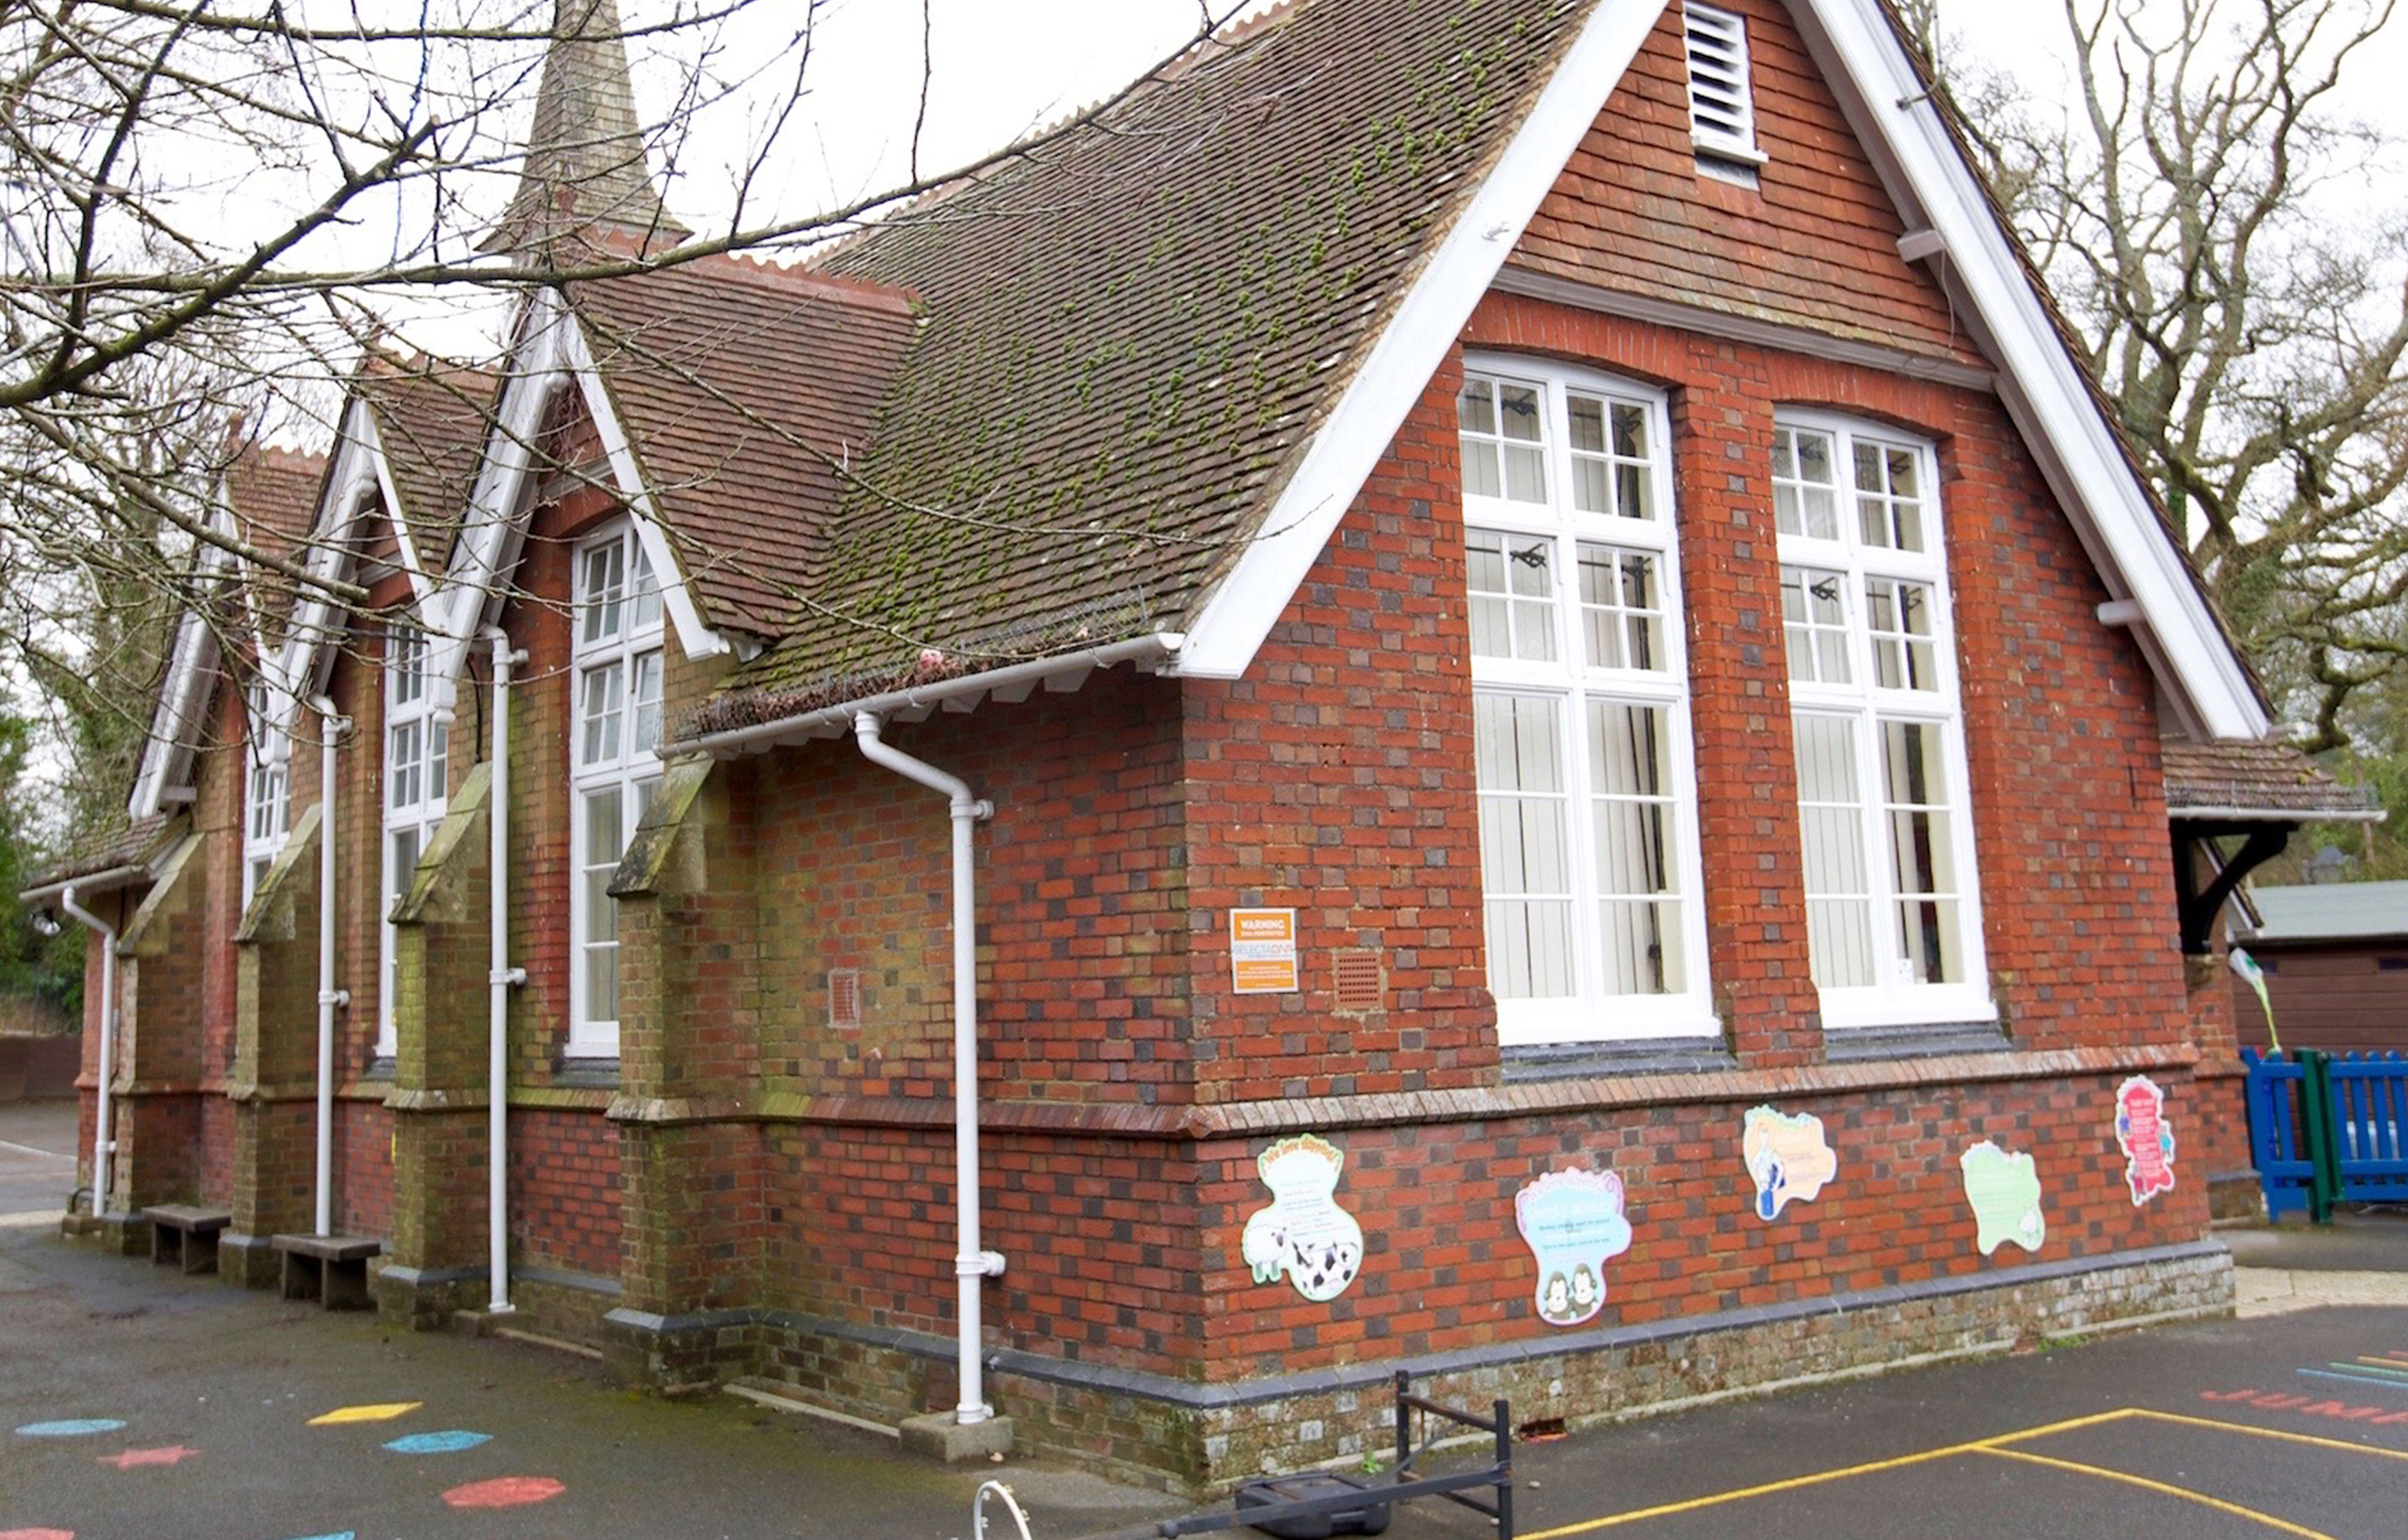 Ampfield Primary School